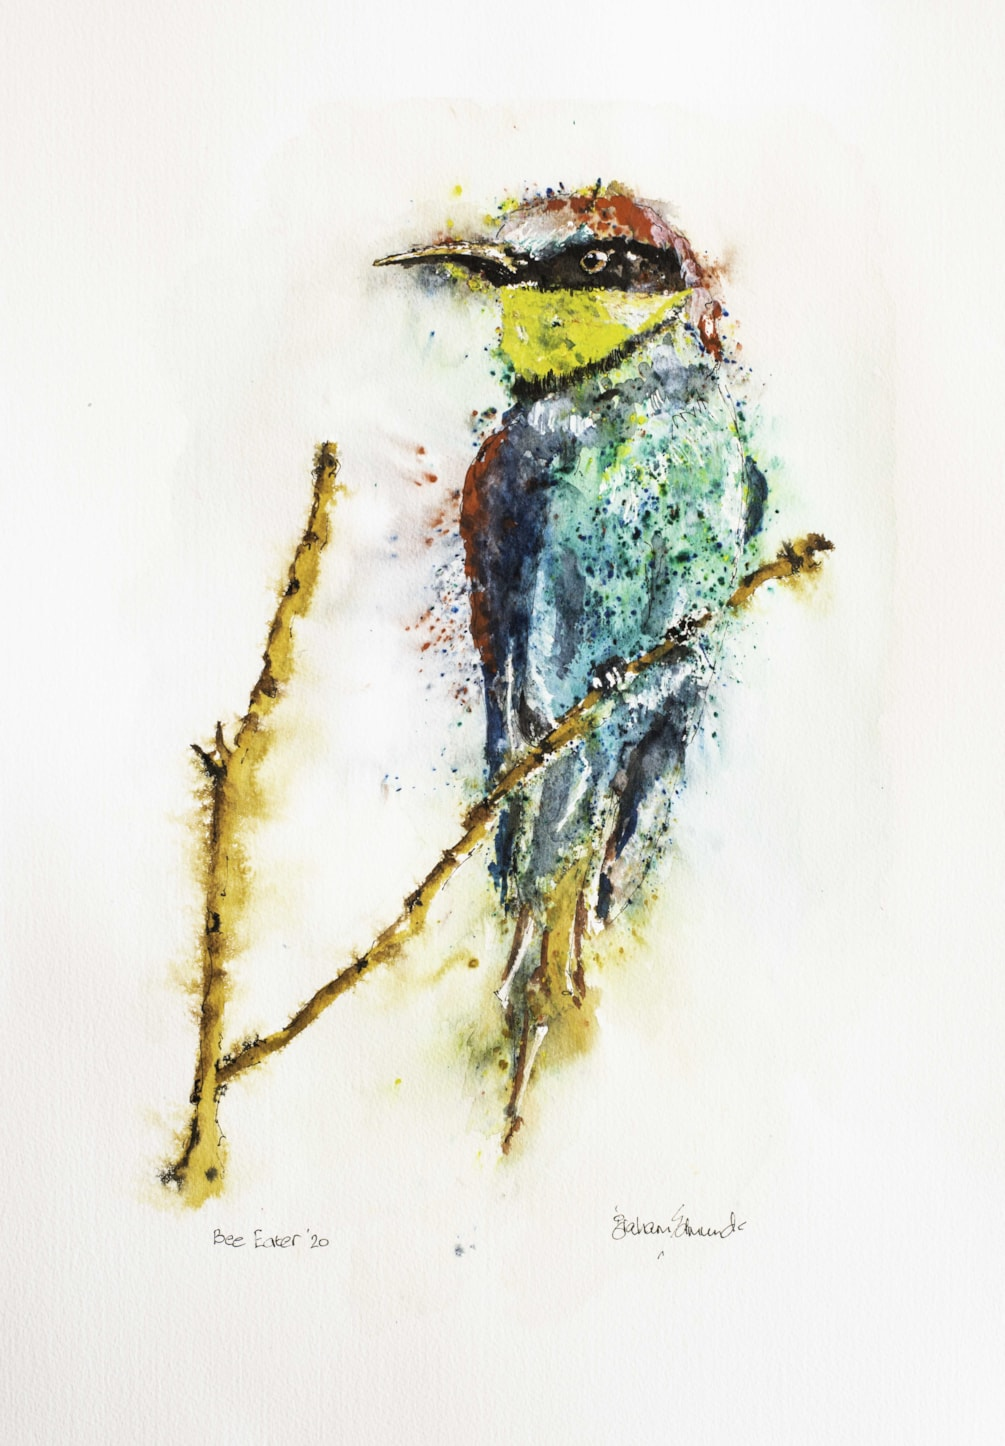 Bee Eater '20 Signed-20 - Copy